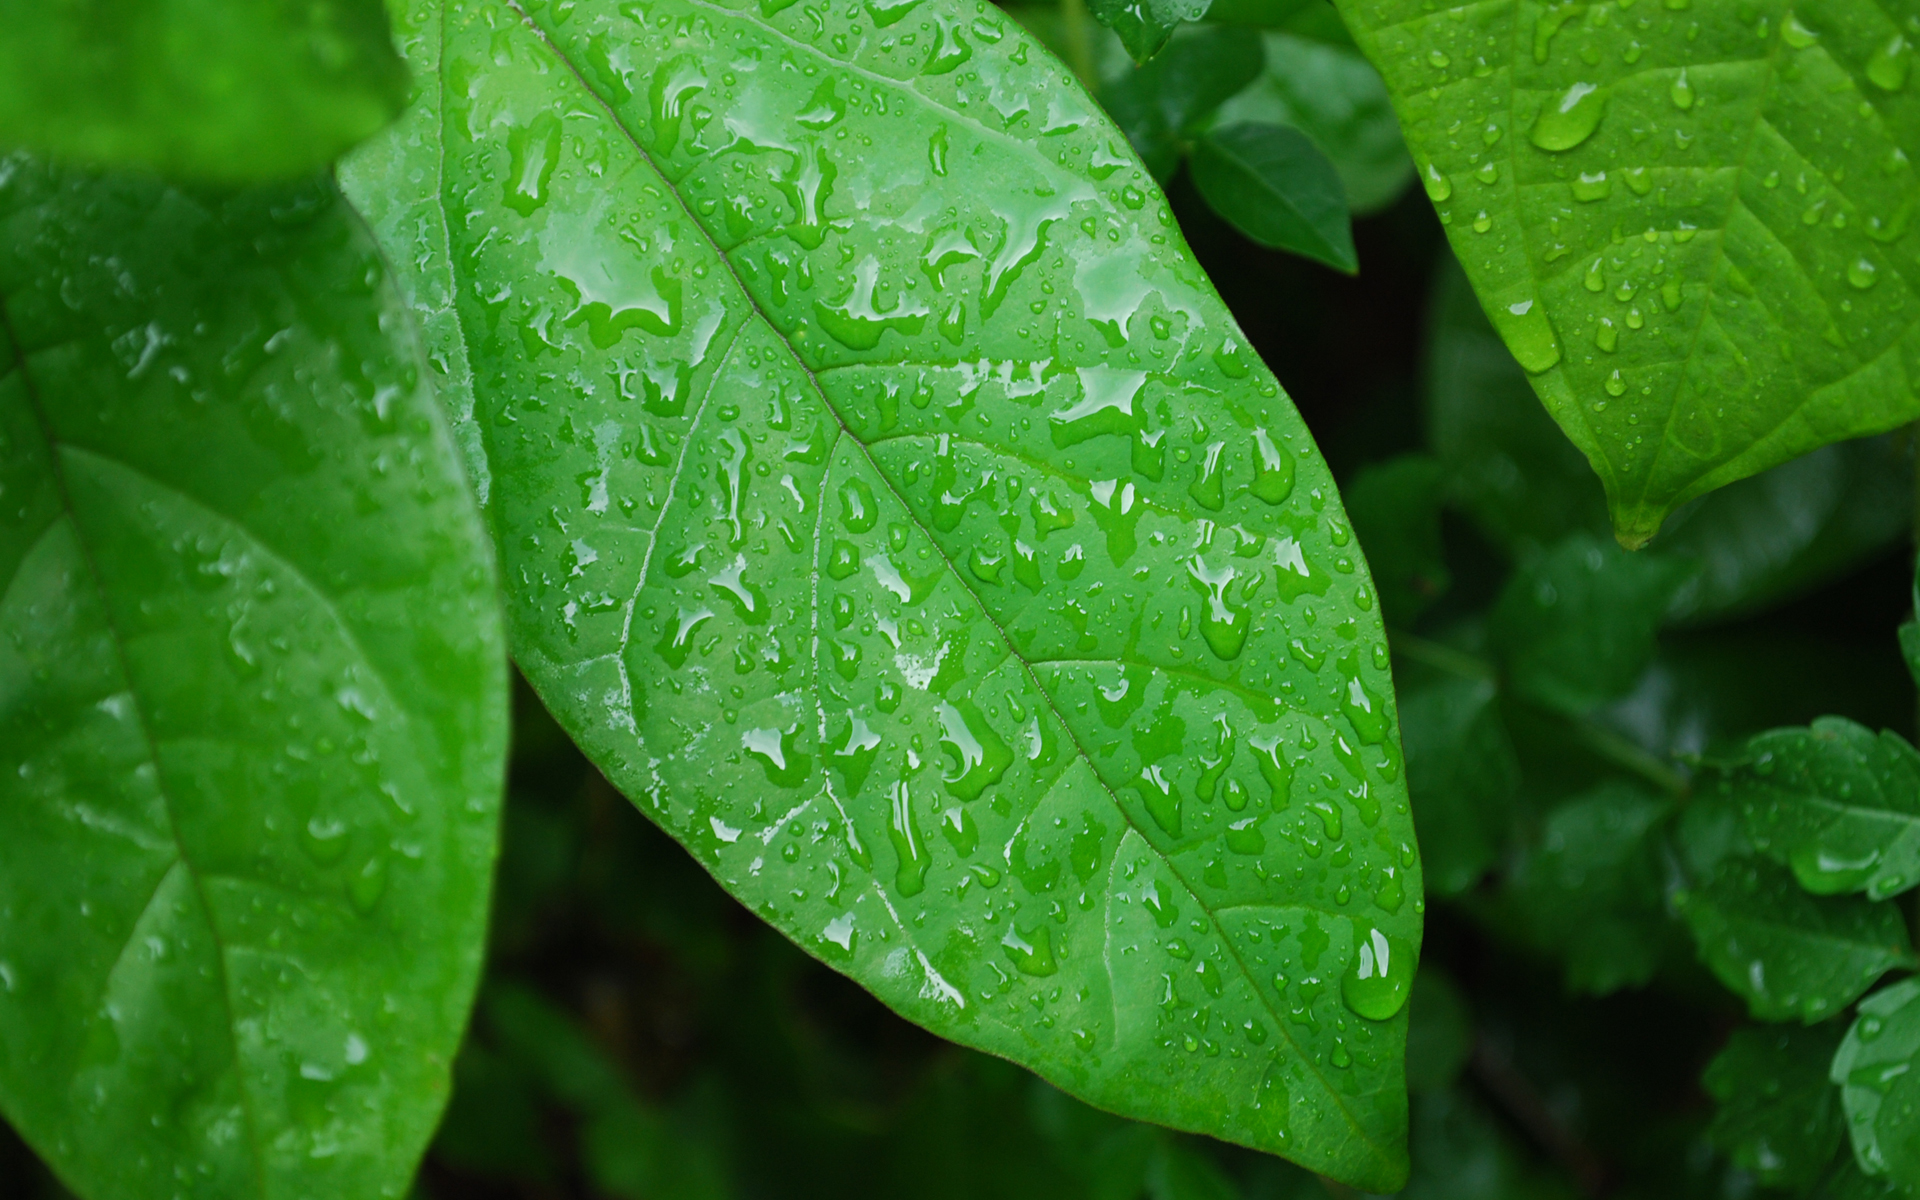 Green Nature Leaves Wet Plants Water - [1920 x 1200]